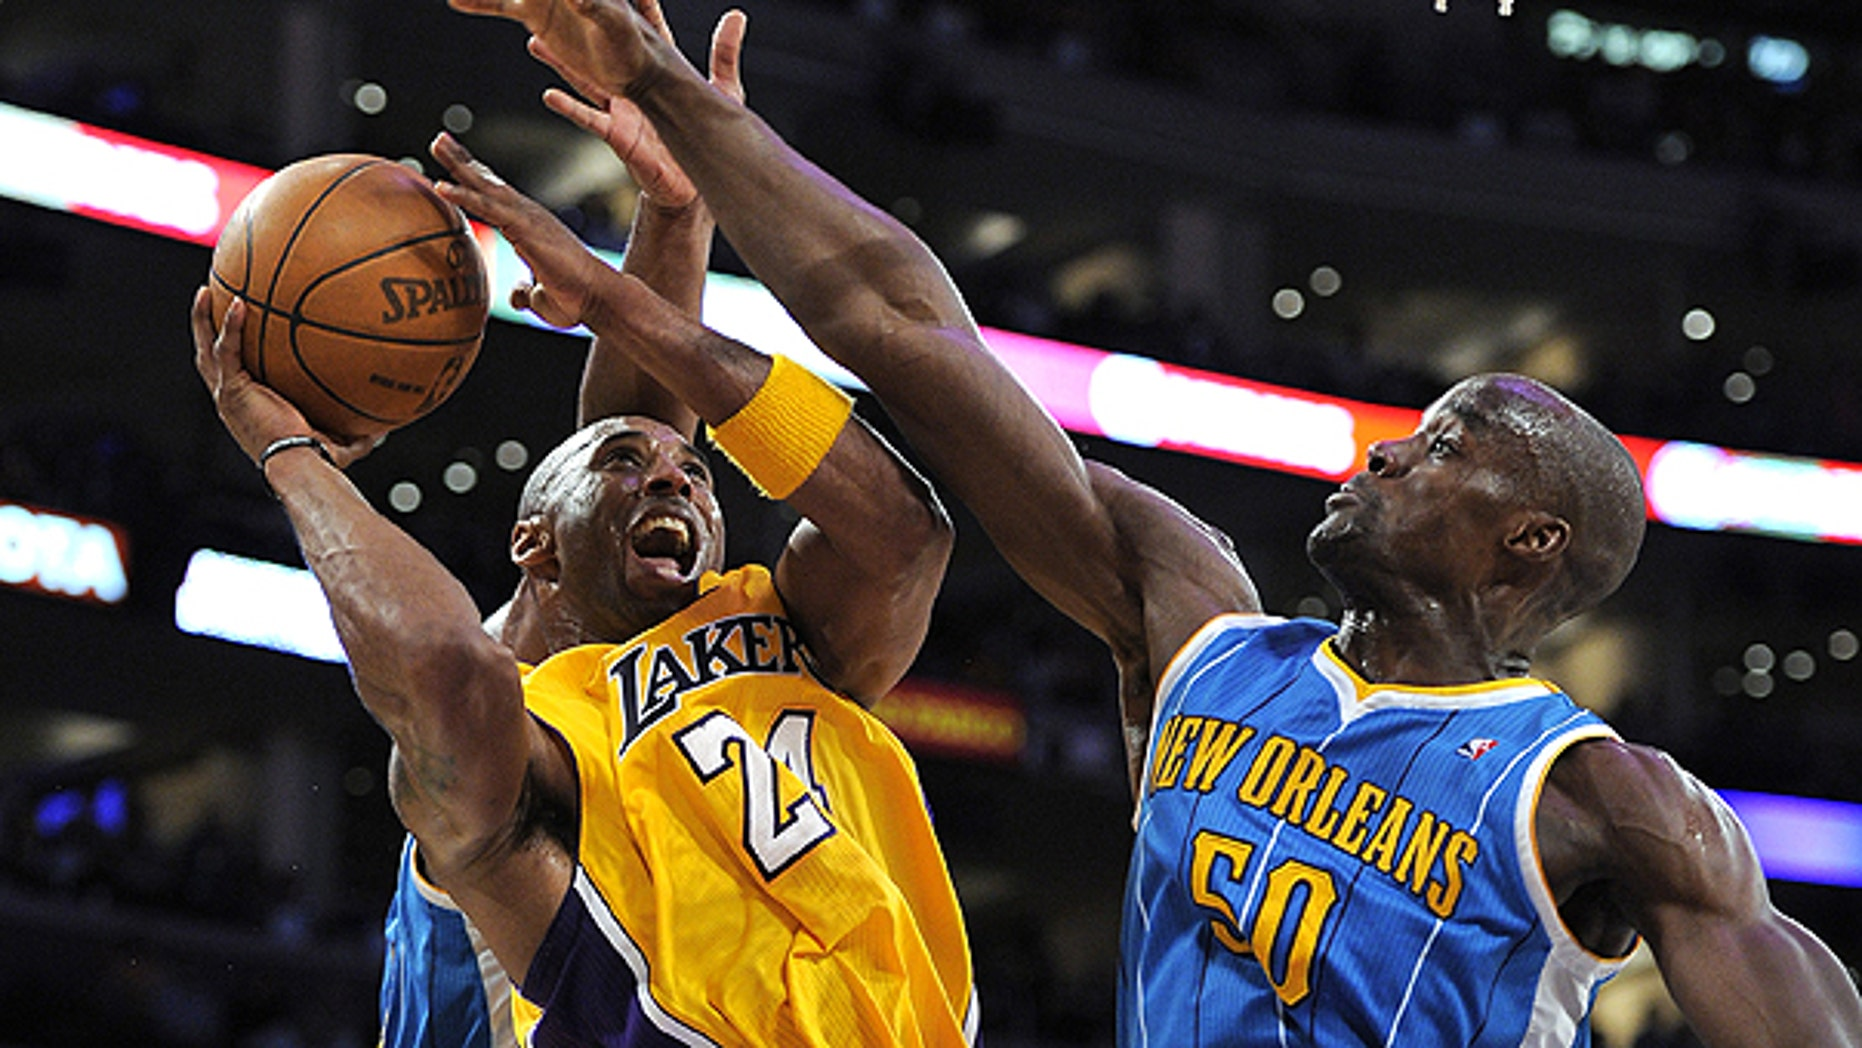 April 26: Los Angeles Lakers guard Kobe Bryant, left, goes up for a shot as New Orleans Hornets center Emeka Okafor defends during the second half in Game 5 of a first-round NBA basketball playoff series in Los Angeles.